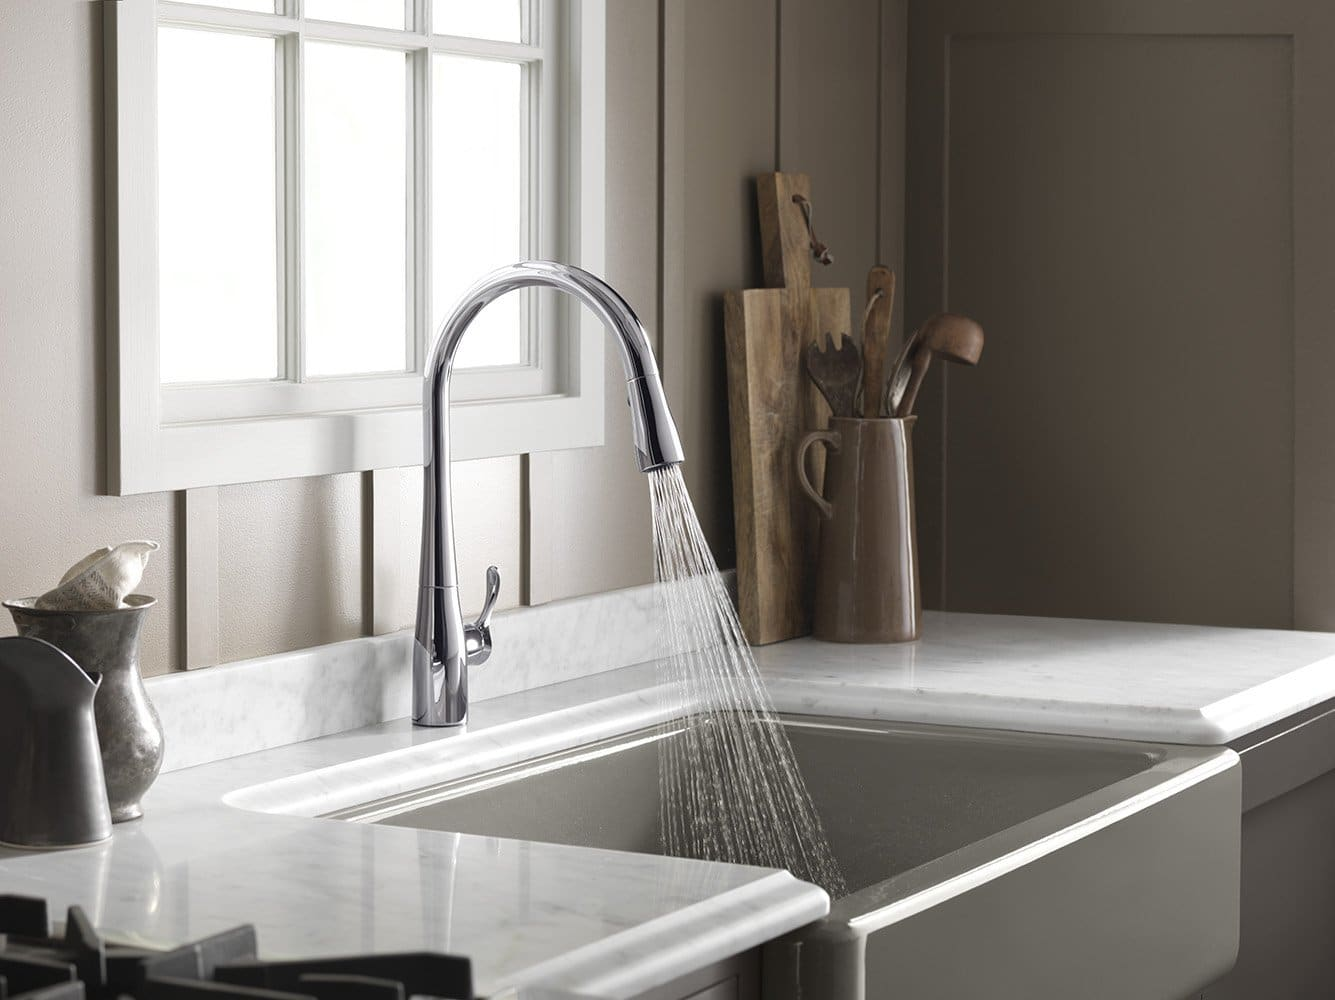 Kitchen Faucets Go | Home Base Reviews Reviews Of All Home Base Equipments